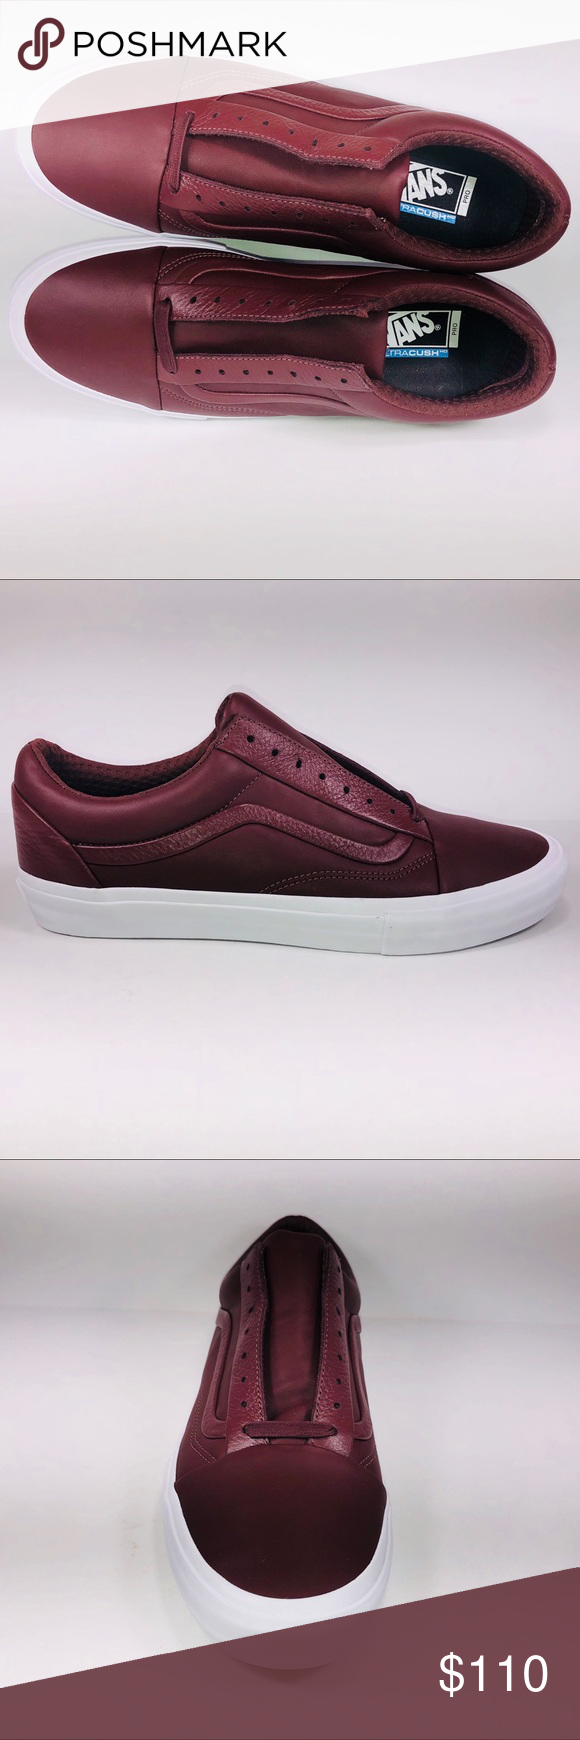 VANS Old Skool Stitch & Turn Leather Andorra Shoes New With